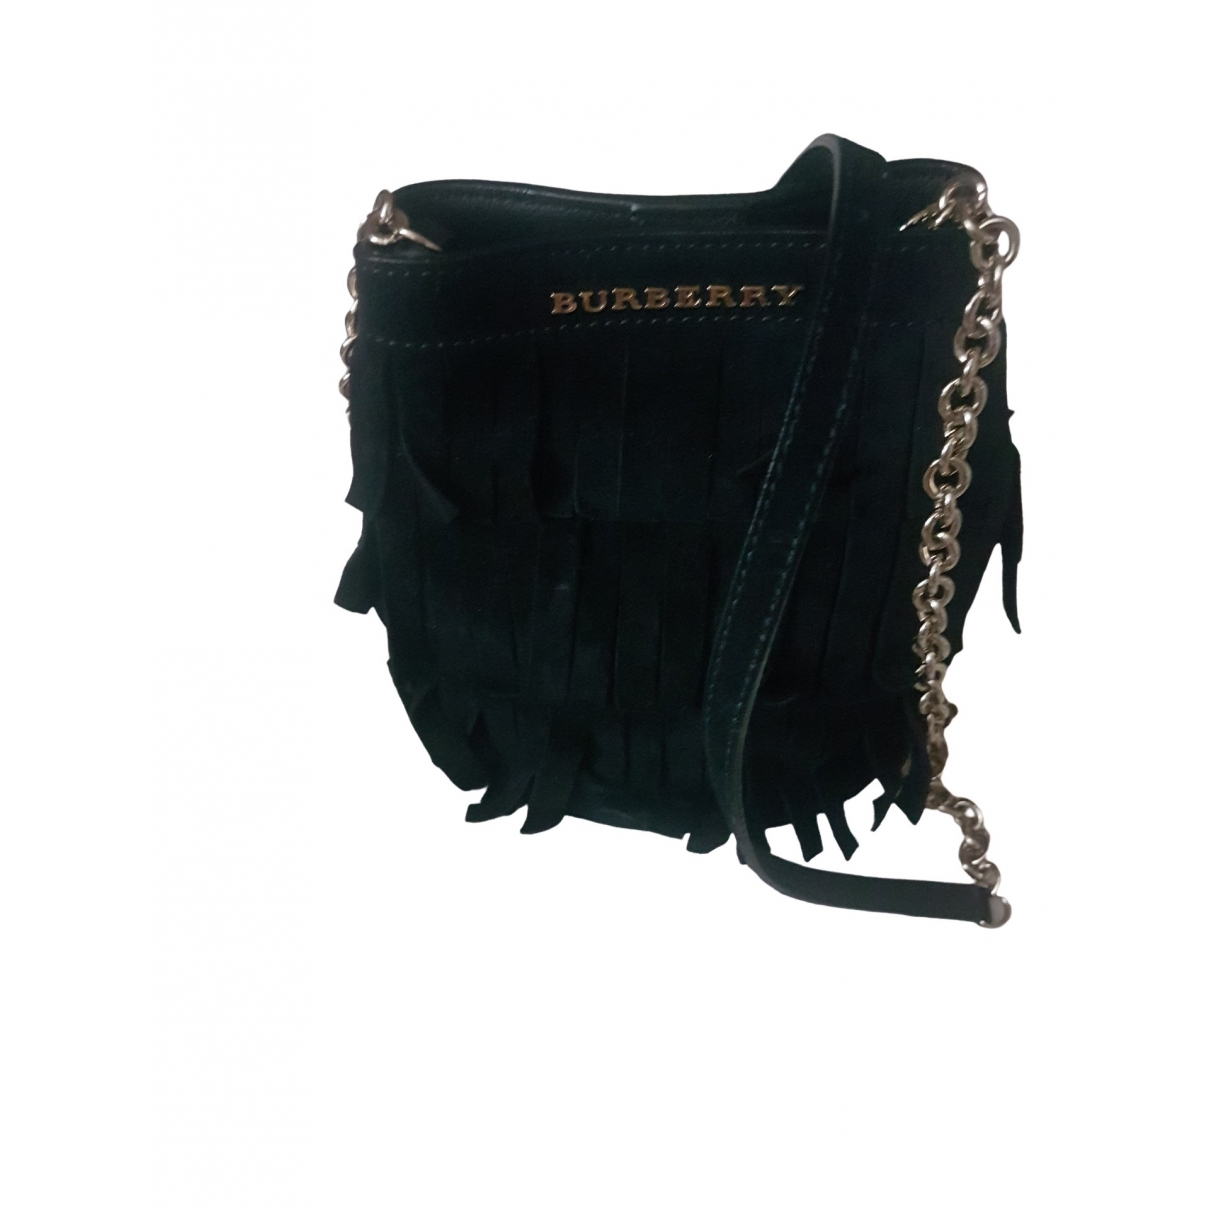 Burberry \N Clutch in  Schwarz Veloursleder